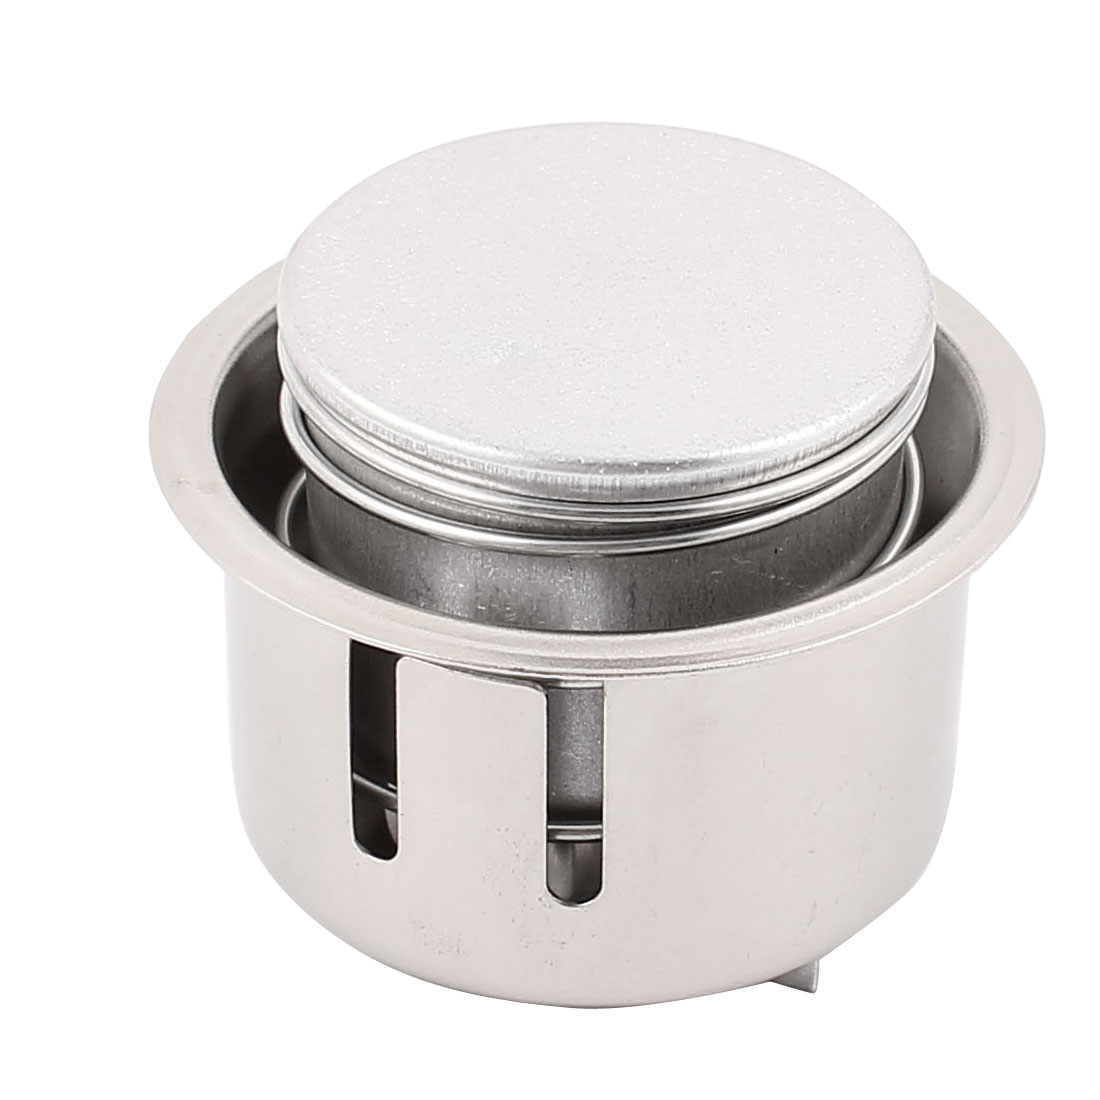 Temperature Limiter Electric Rice Cooker Magnetic Center Thermostat